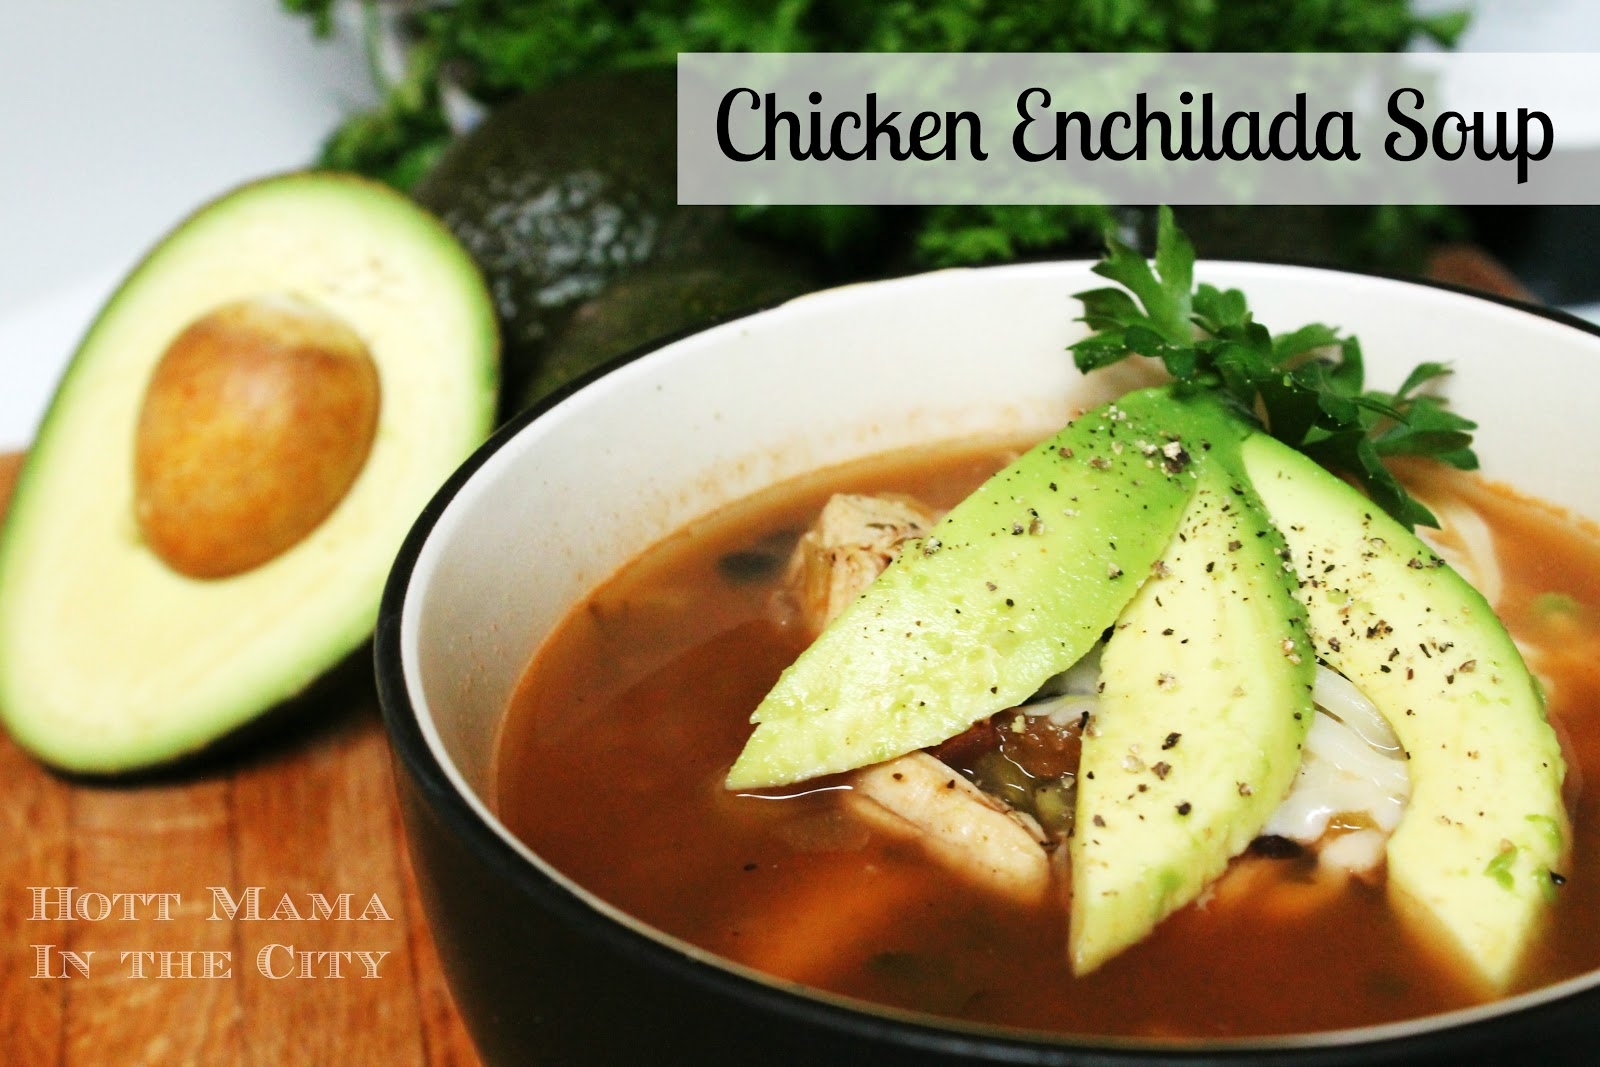 enchilada soup 3 boats chicken enchilada soup chicken enchilada soup ...